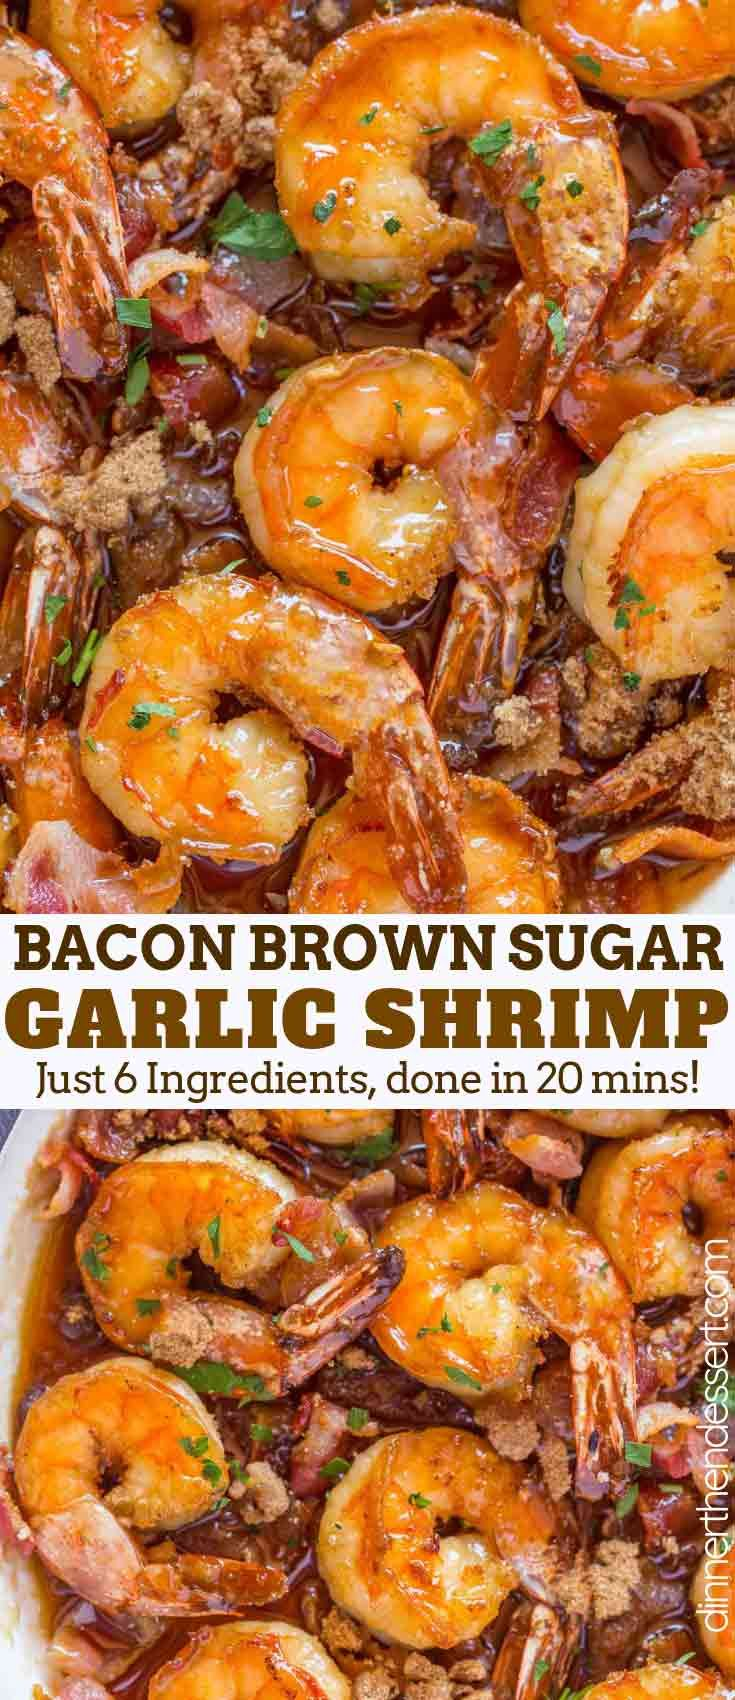 Bacon Brown Sugar Garlic Shrimp, the best shrimp appetizer you'll ever eat with only 4 Ingredient